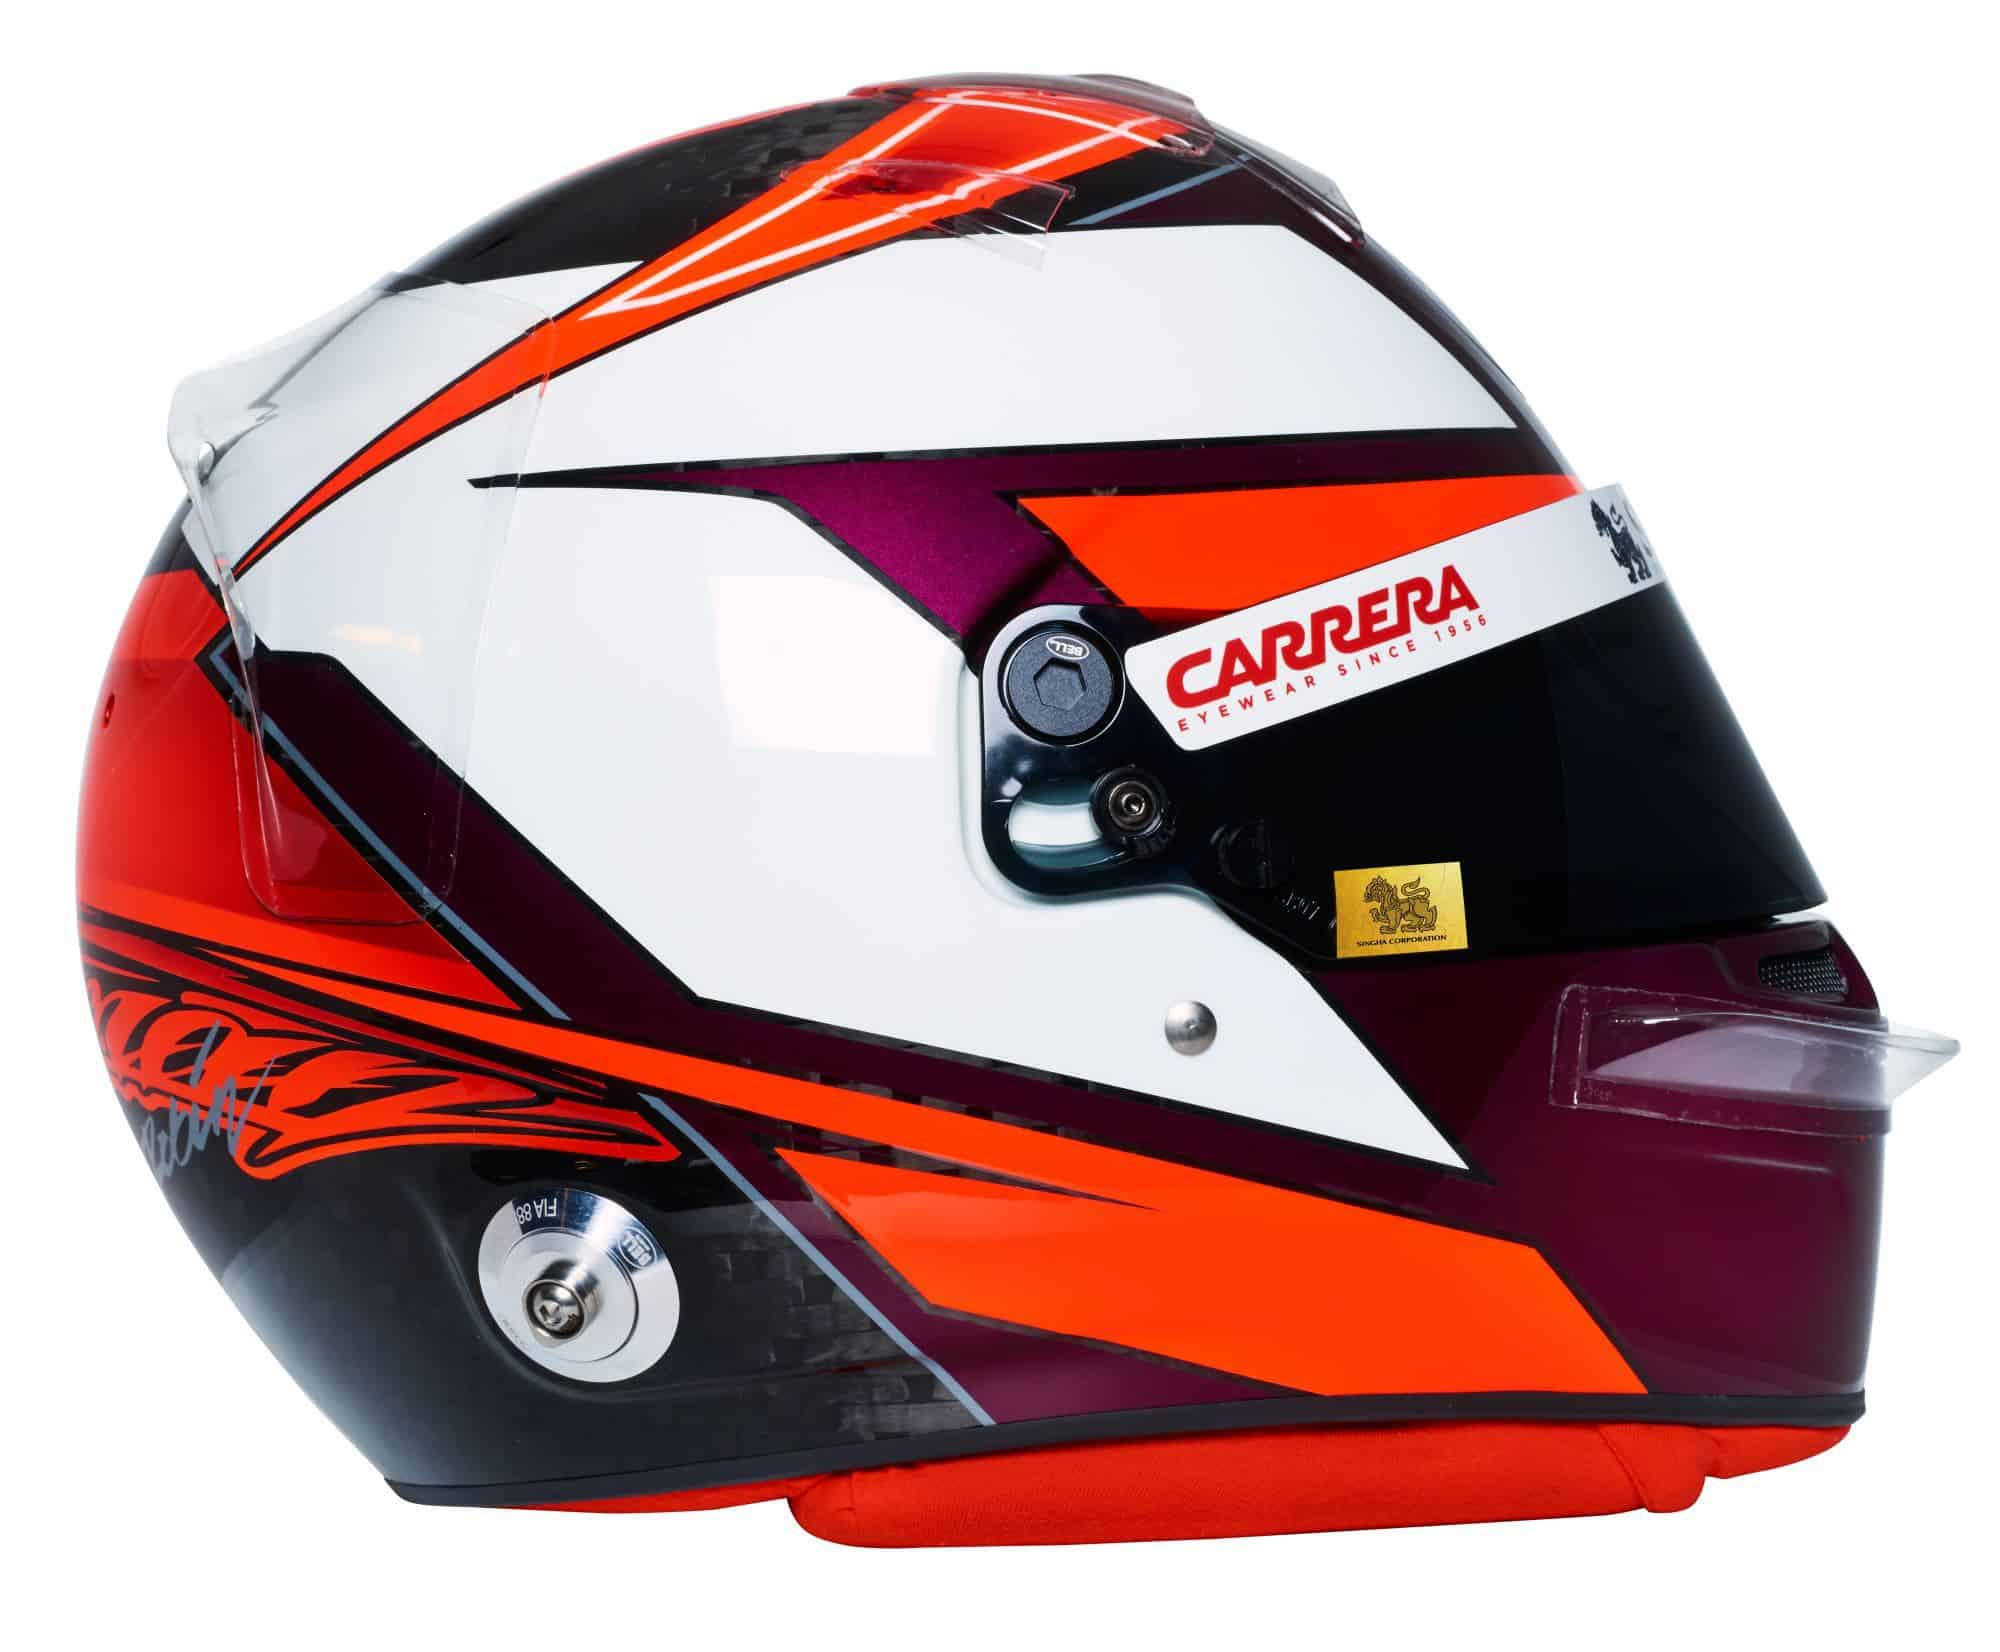 Kimi Raikkonen 2019 F1 helmet Alfa Romeo Racing right side Photo Alfa Romeo Edited by MAXF1net